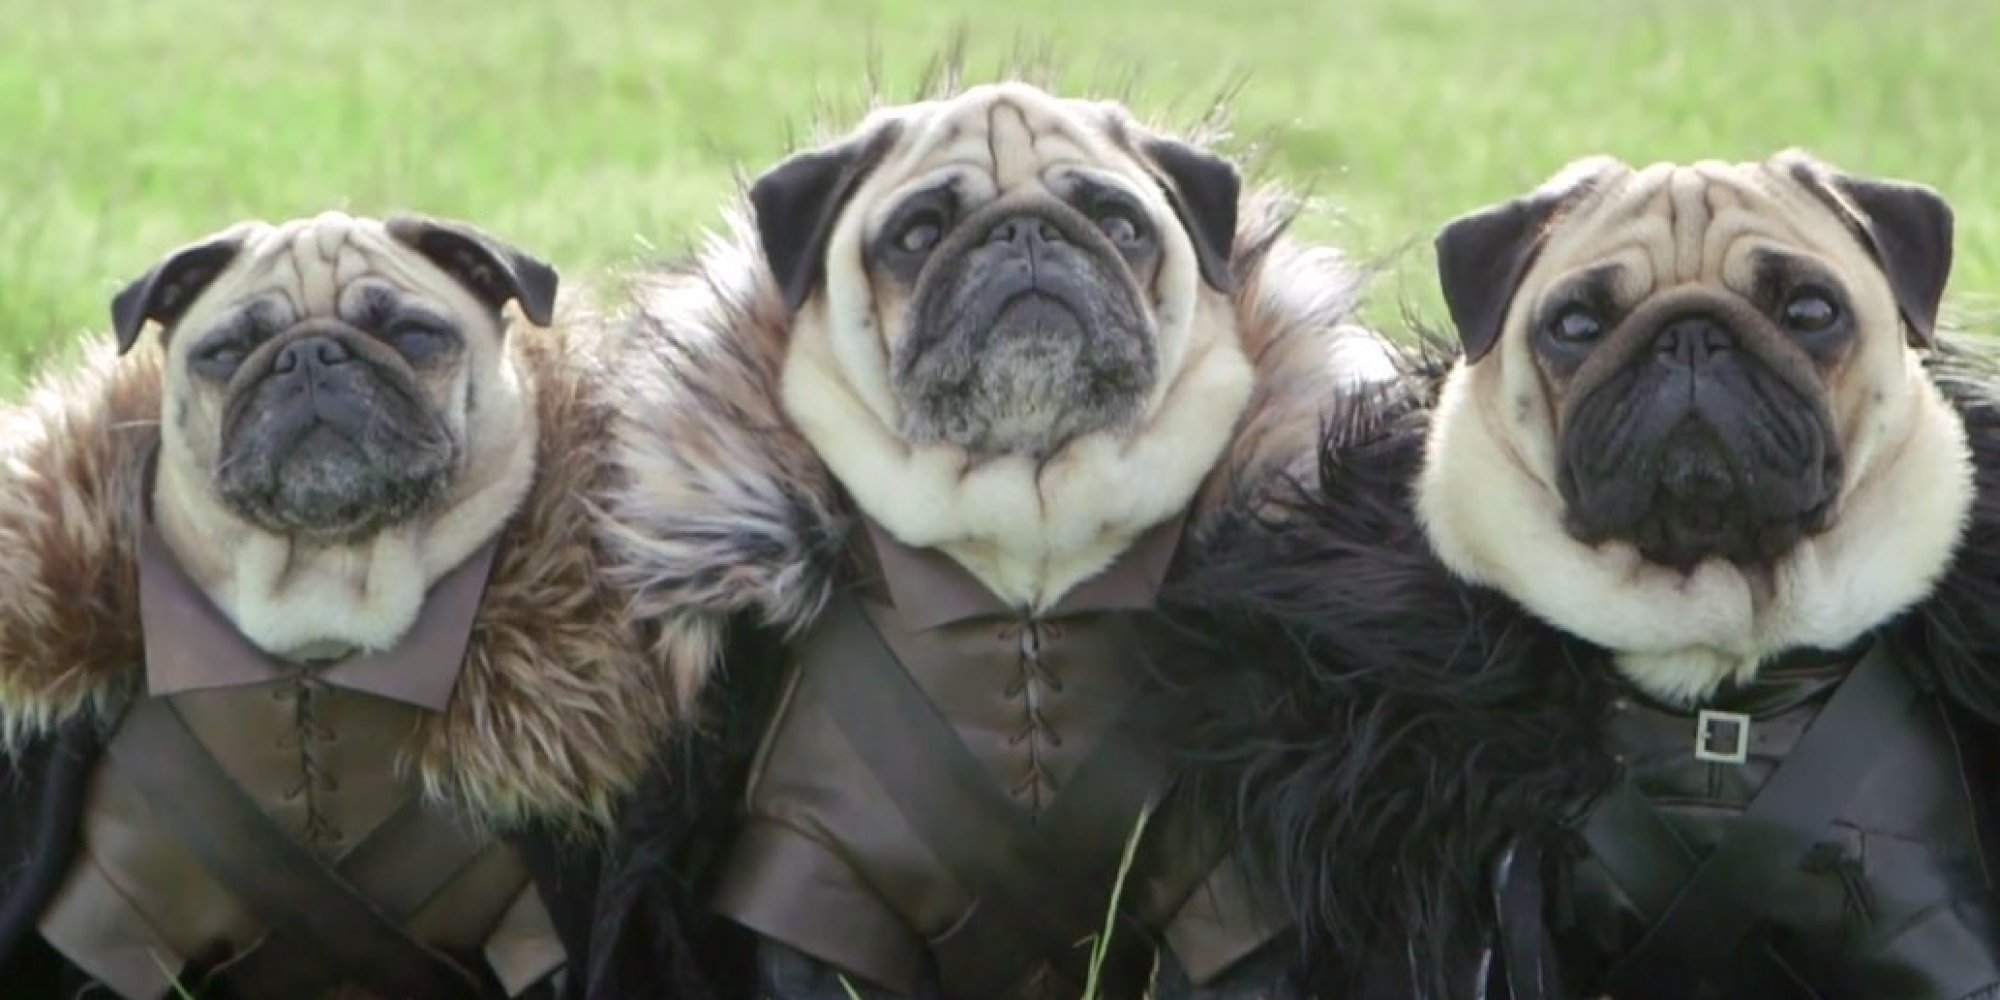 'Game Of Thrones' Pugs Slaughter Us With Cuteness Pug Game Of Thrones